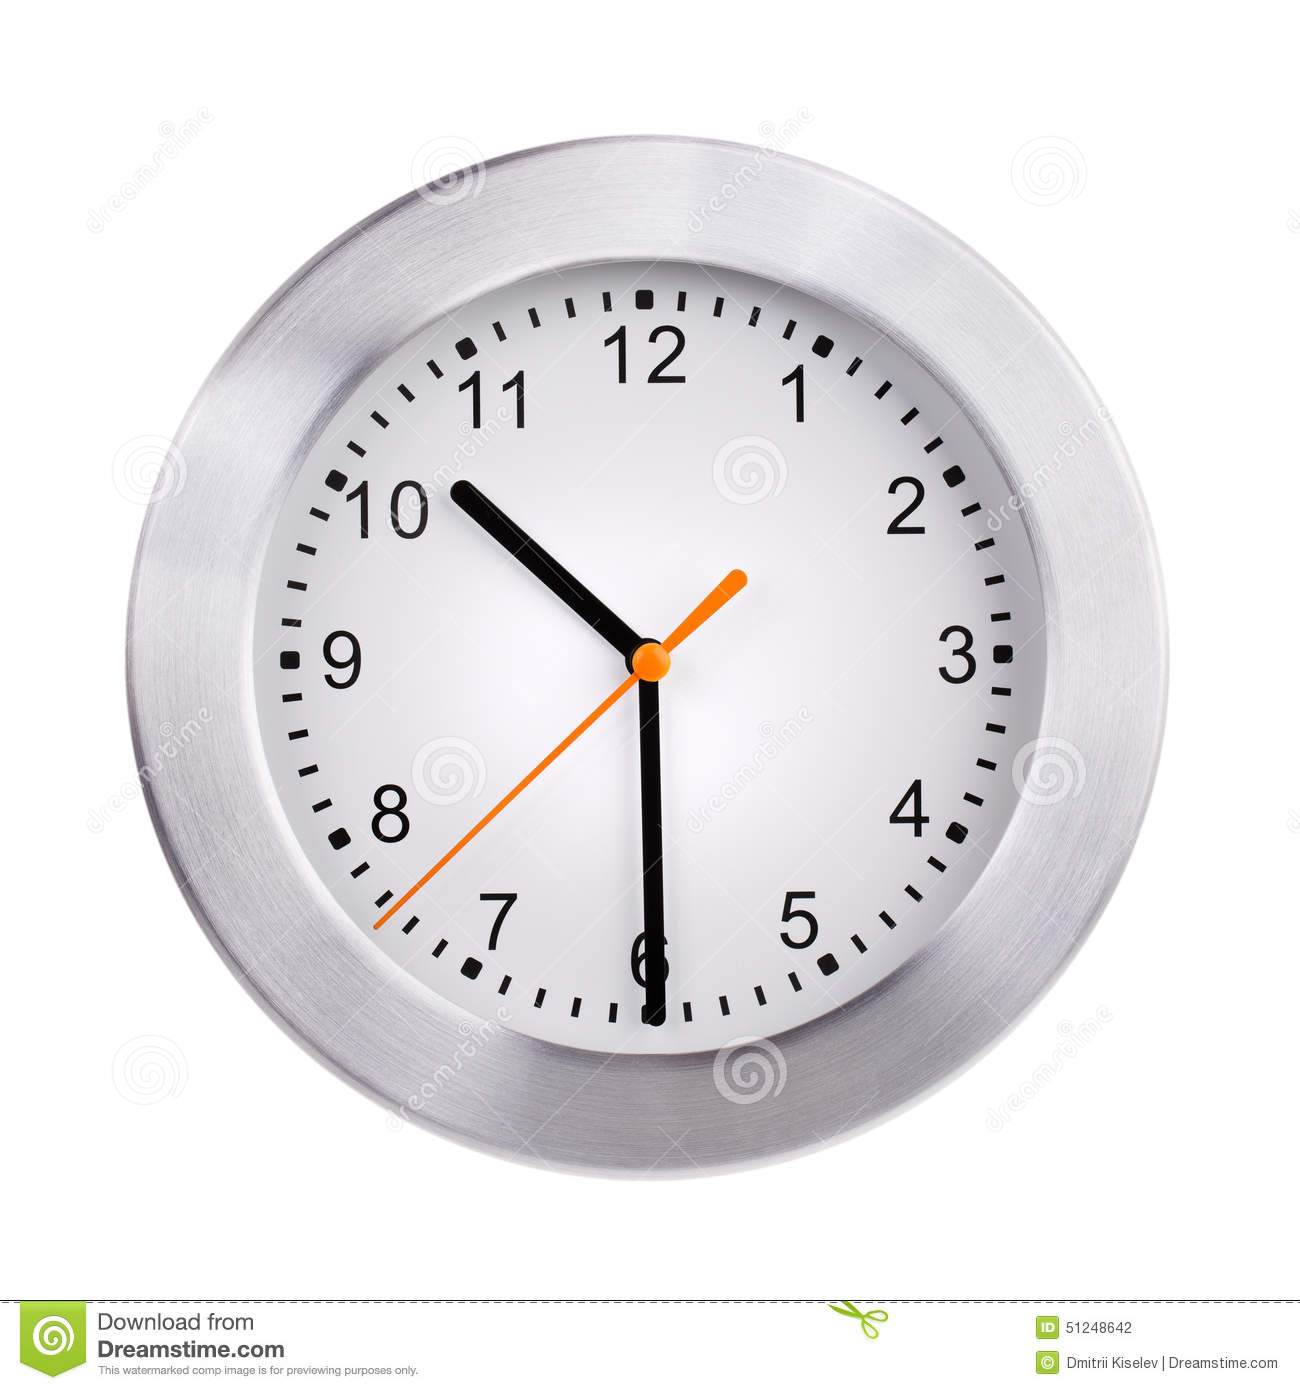 Half Past Ten On The Clock Stock Photo Image Of Timepiece